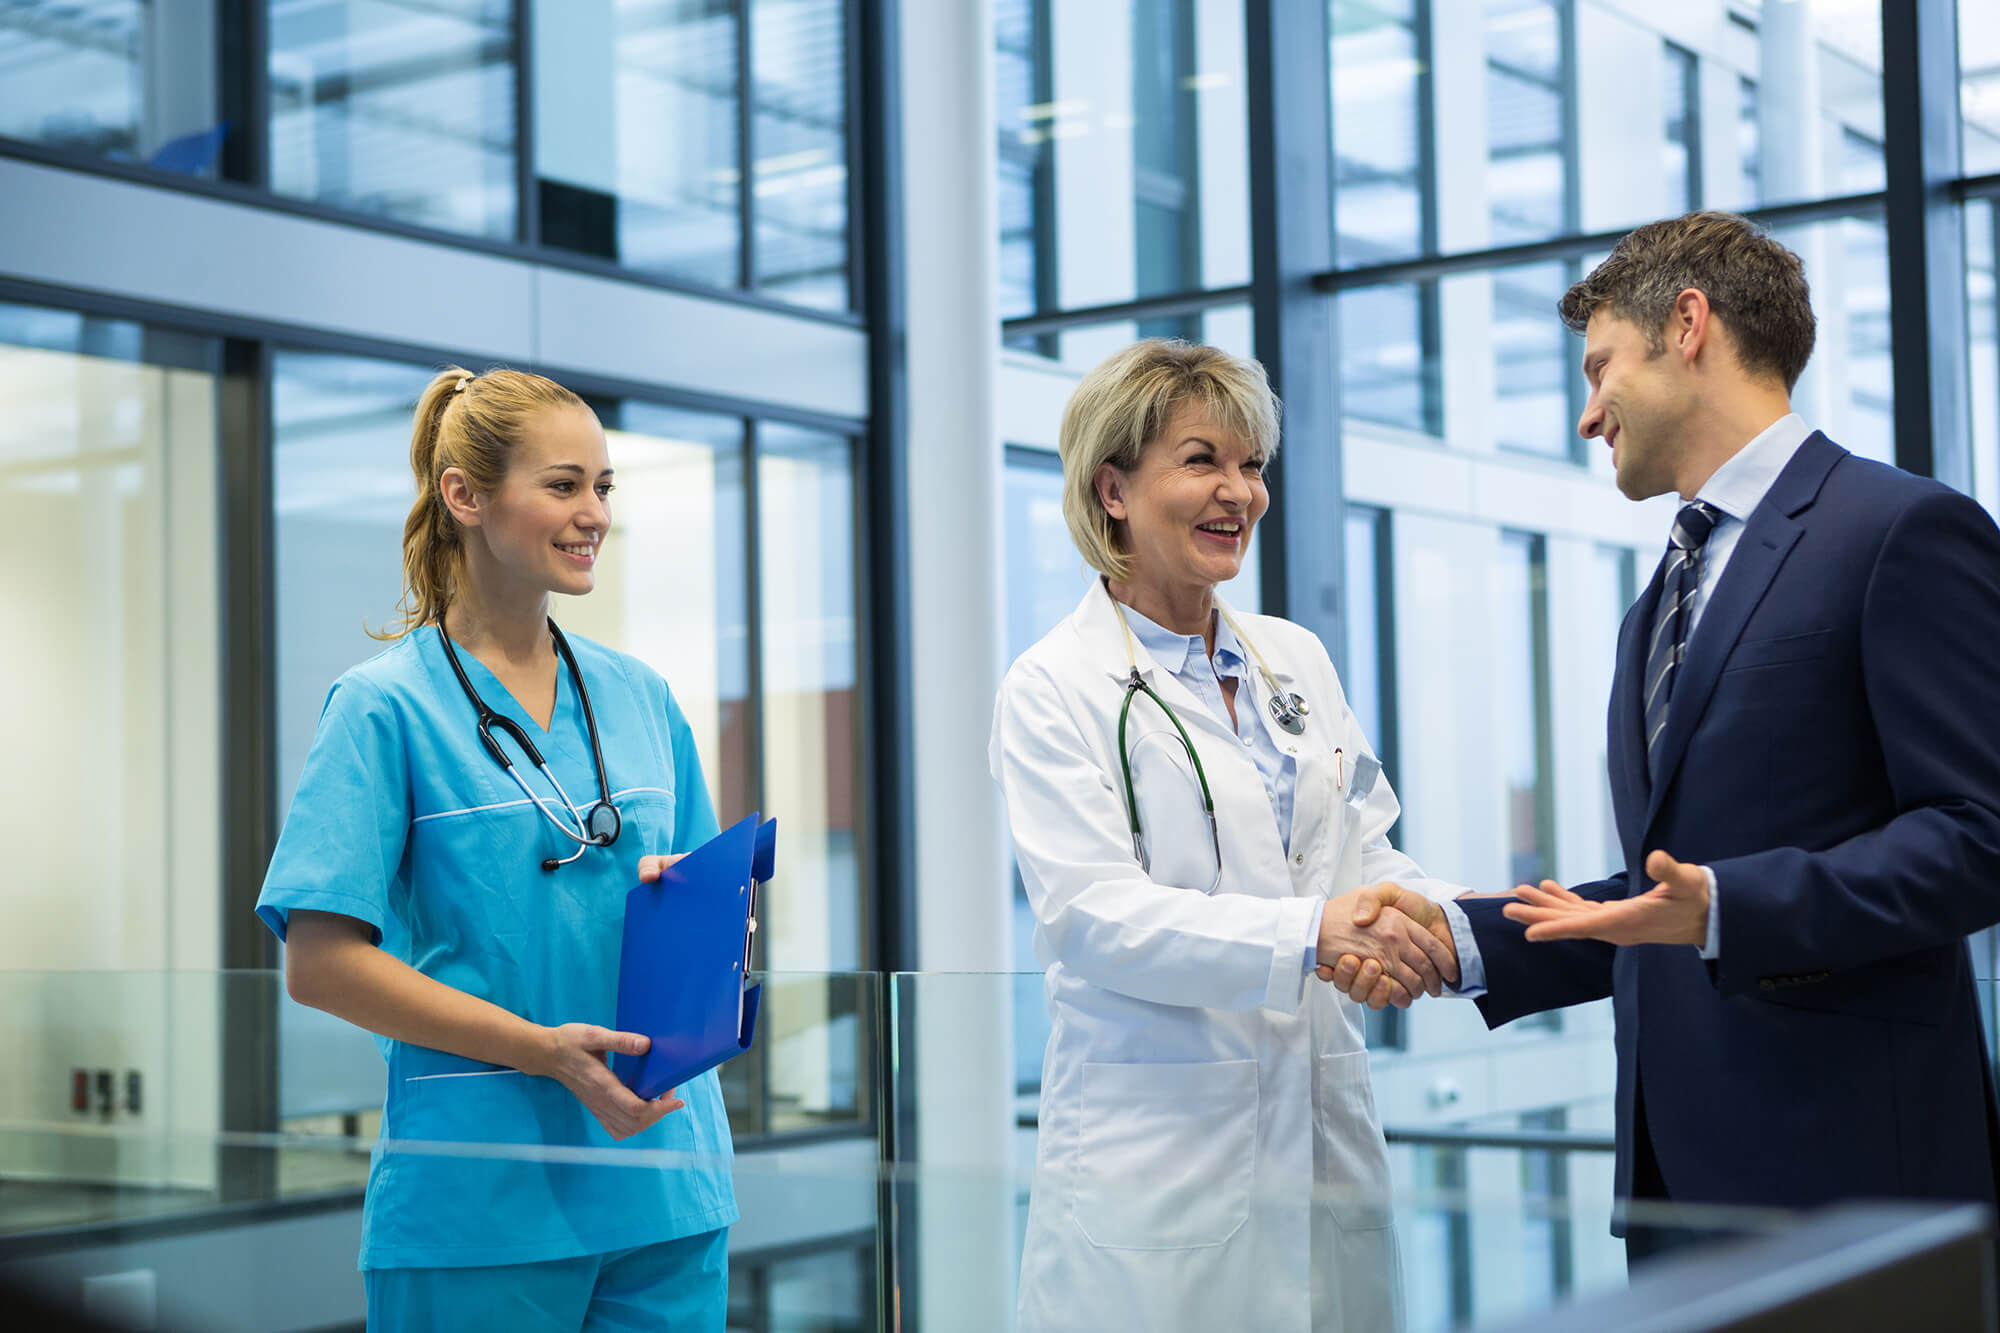 Healthcare Management Professional Greets a Doctor and a Nurse